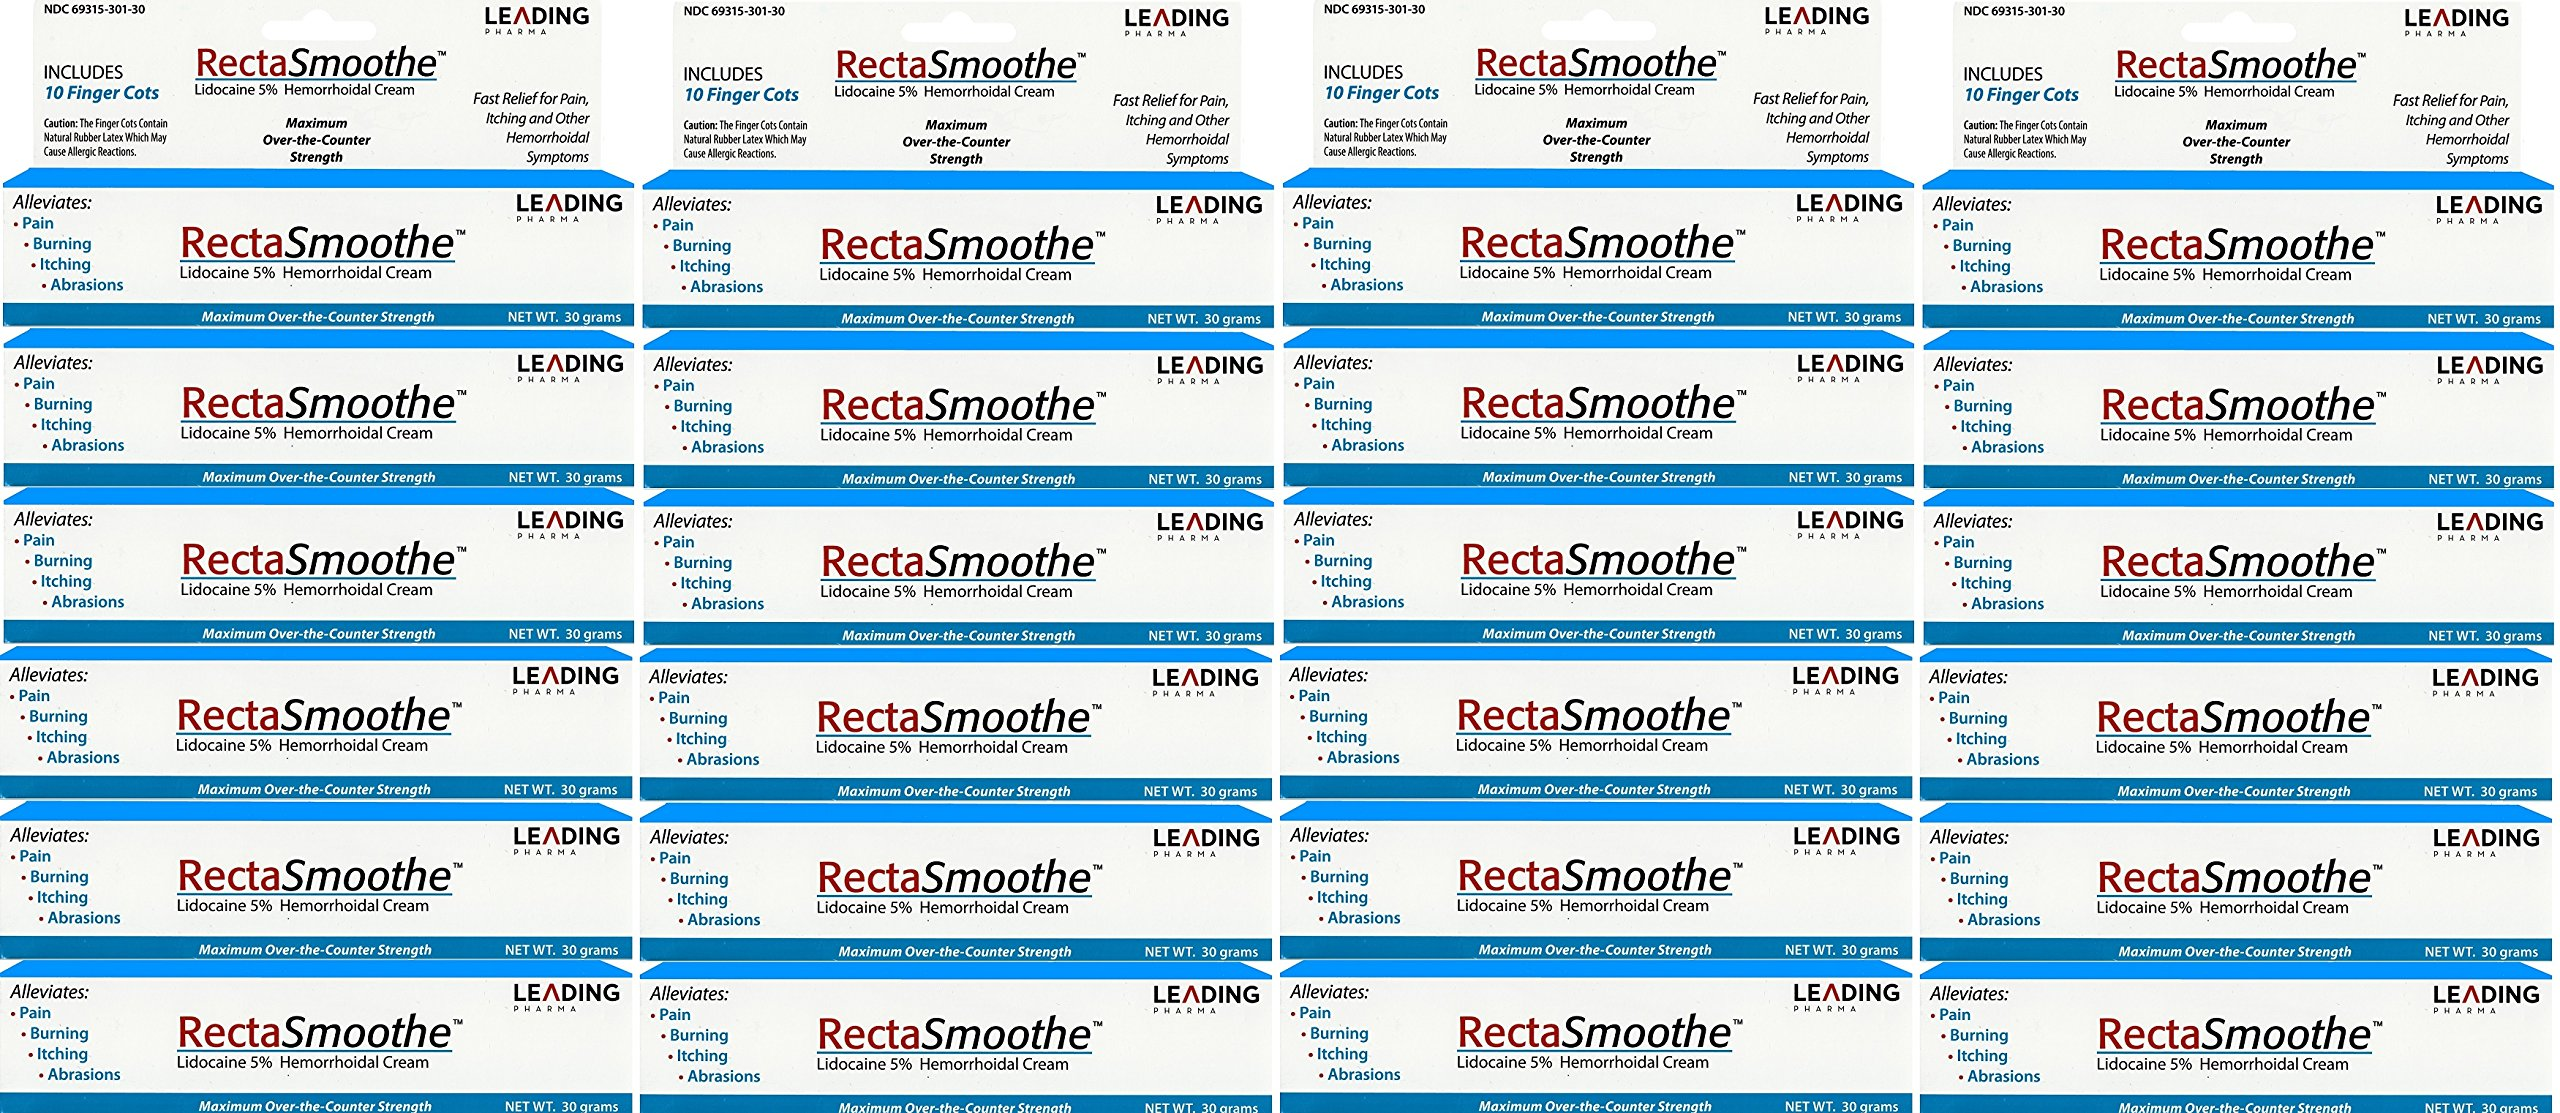 RectaSmoothe Lidocaine 5% Hemorrhoidal Anesthetic Cream, Fast Pain Relief for Hemorrhoids and Other Anorectal Disorders 1 oz. Per Tube PACK of 24